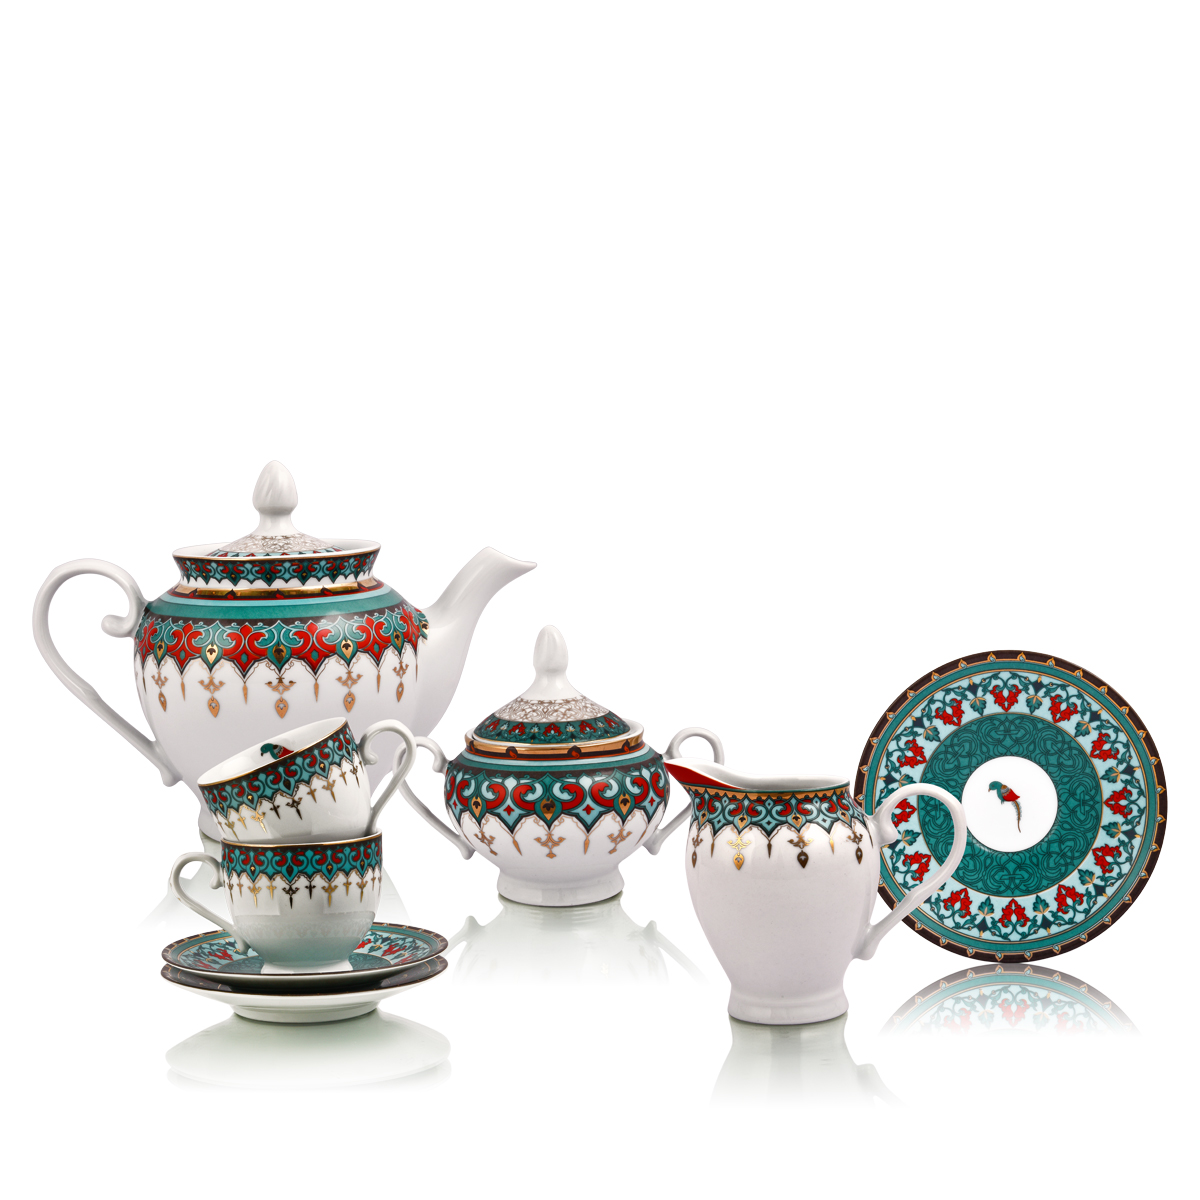 sammezzano tea set